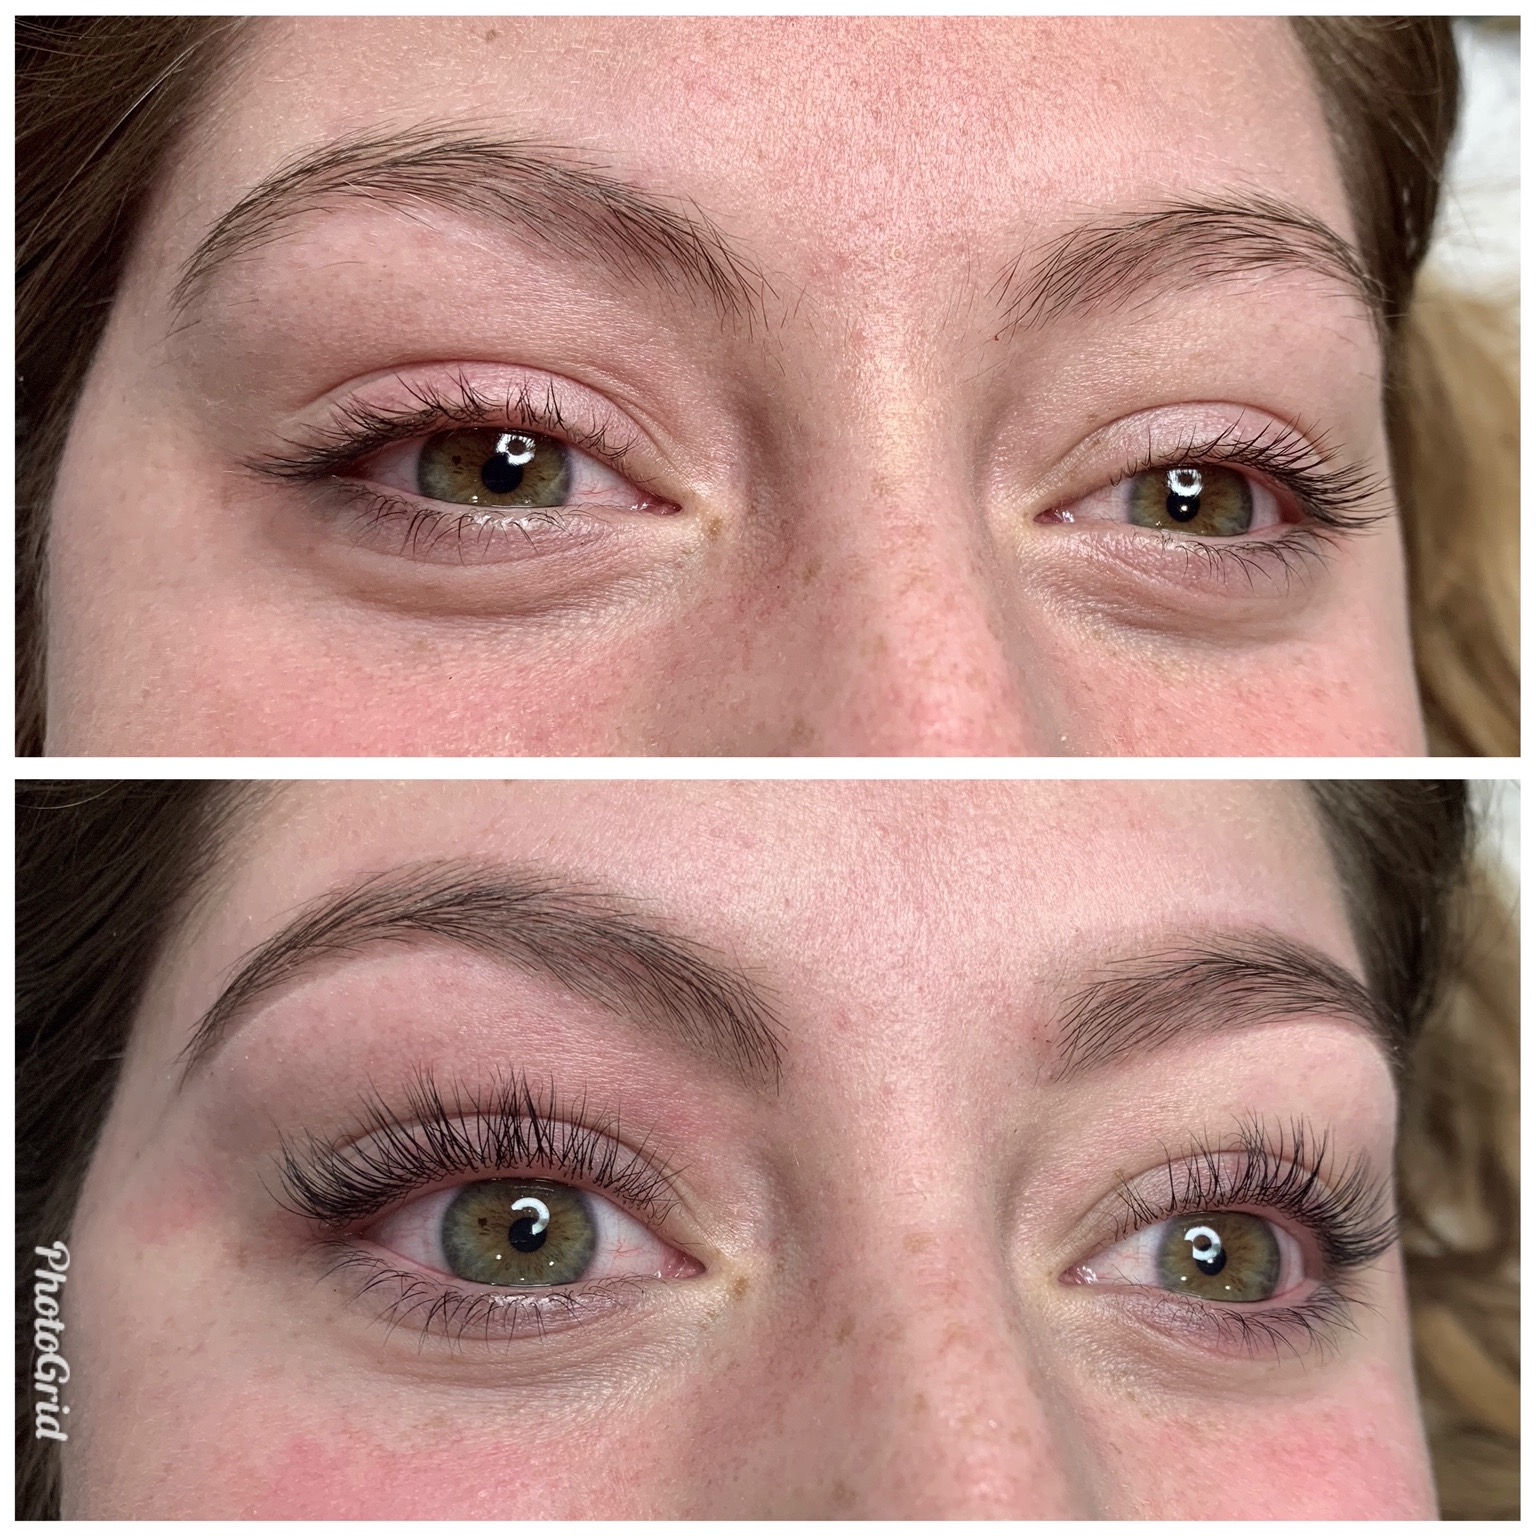 LASH LIFT/TINT & BROW SHAPING